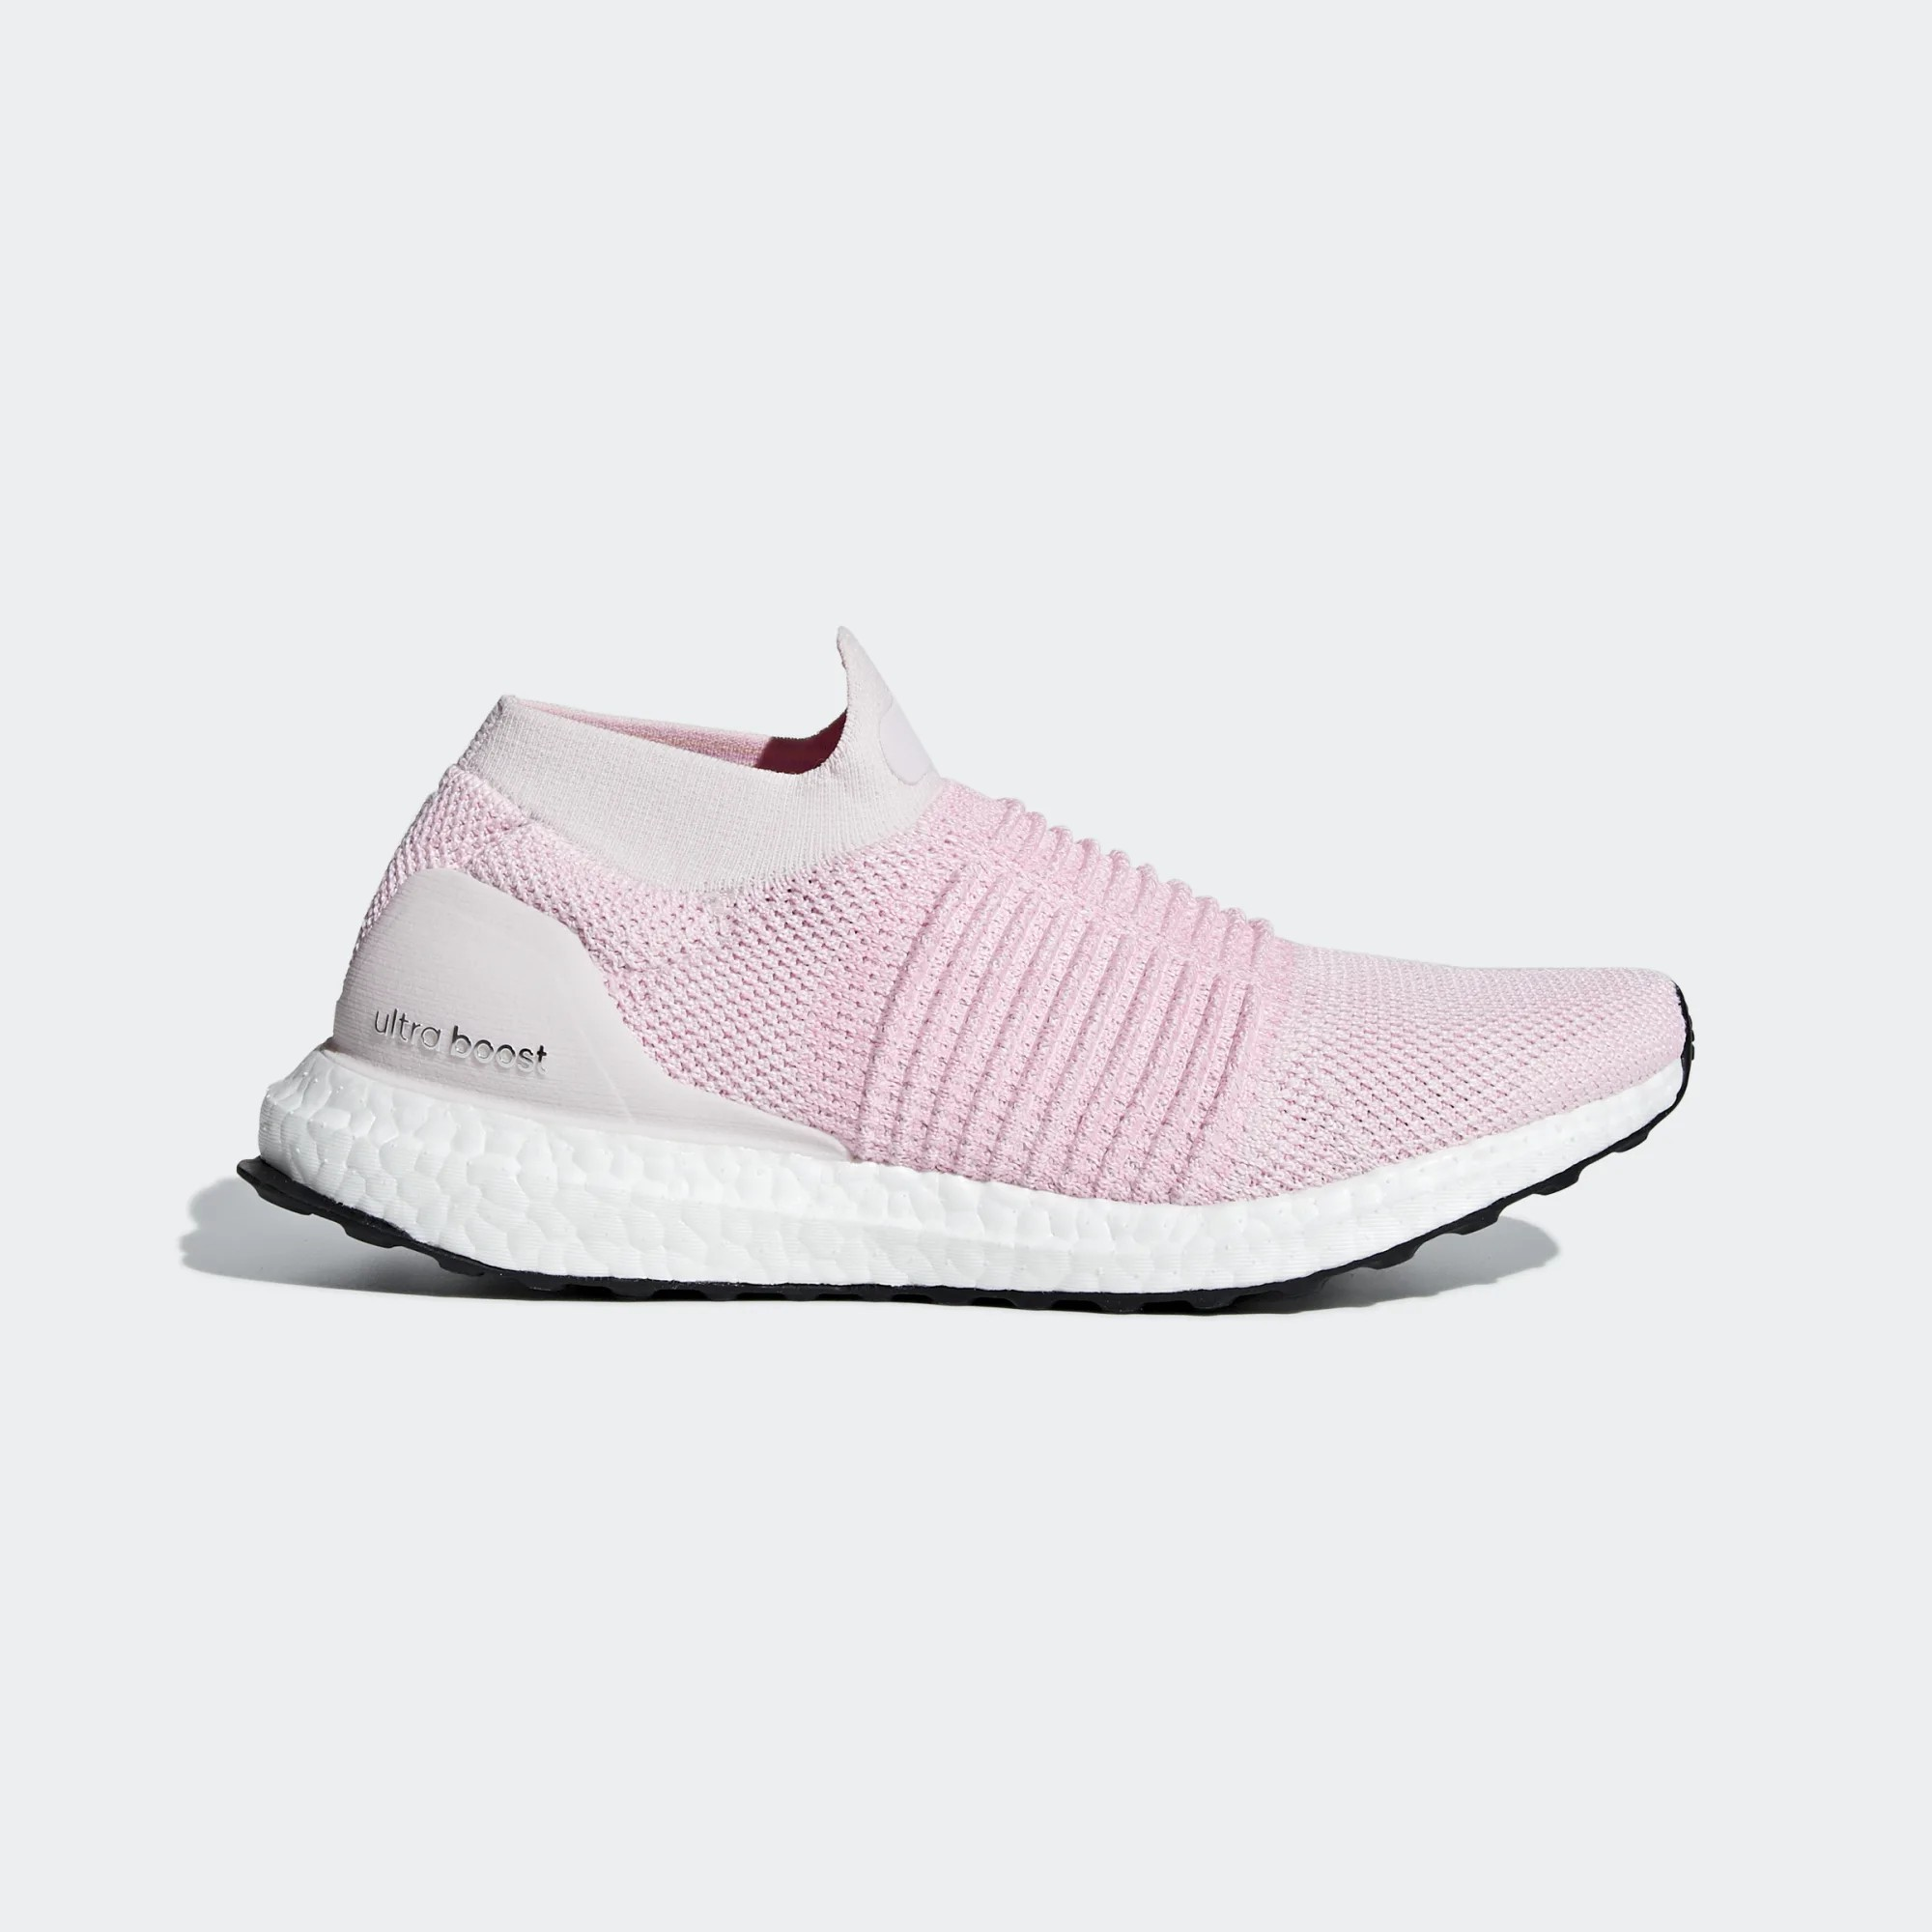 Adidas B75856 Women Ultra Boost laceless Running Shoes Pink